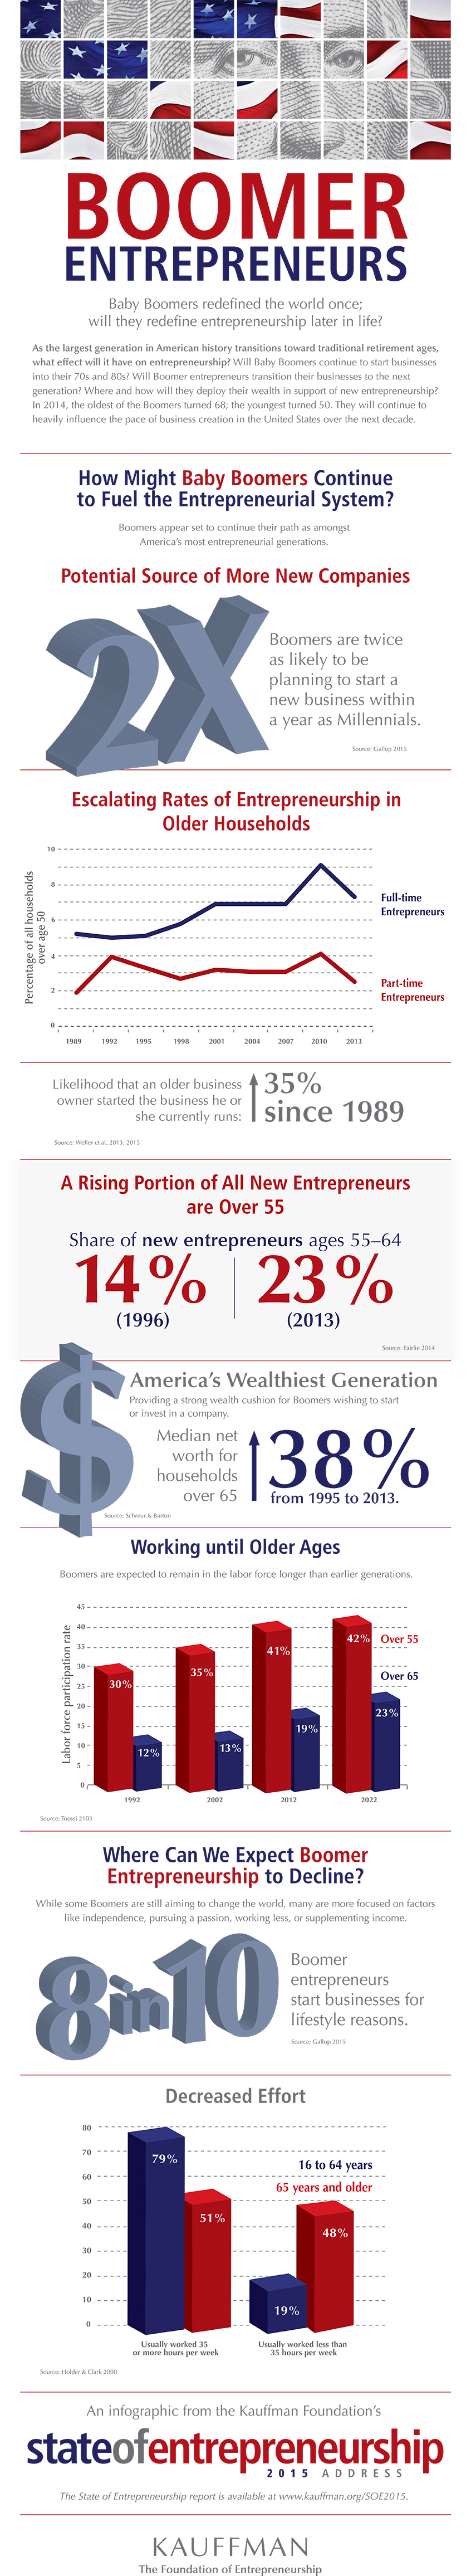 Why Boomers Might Be the Breakout Stars of Entrepreneurship (Infographic)